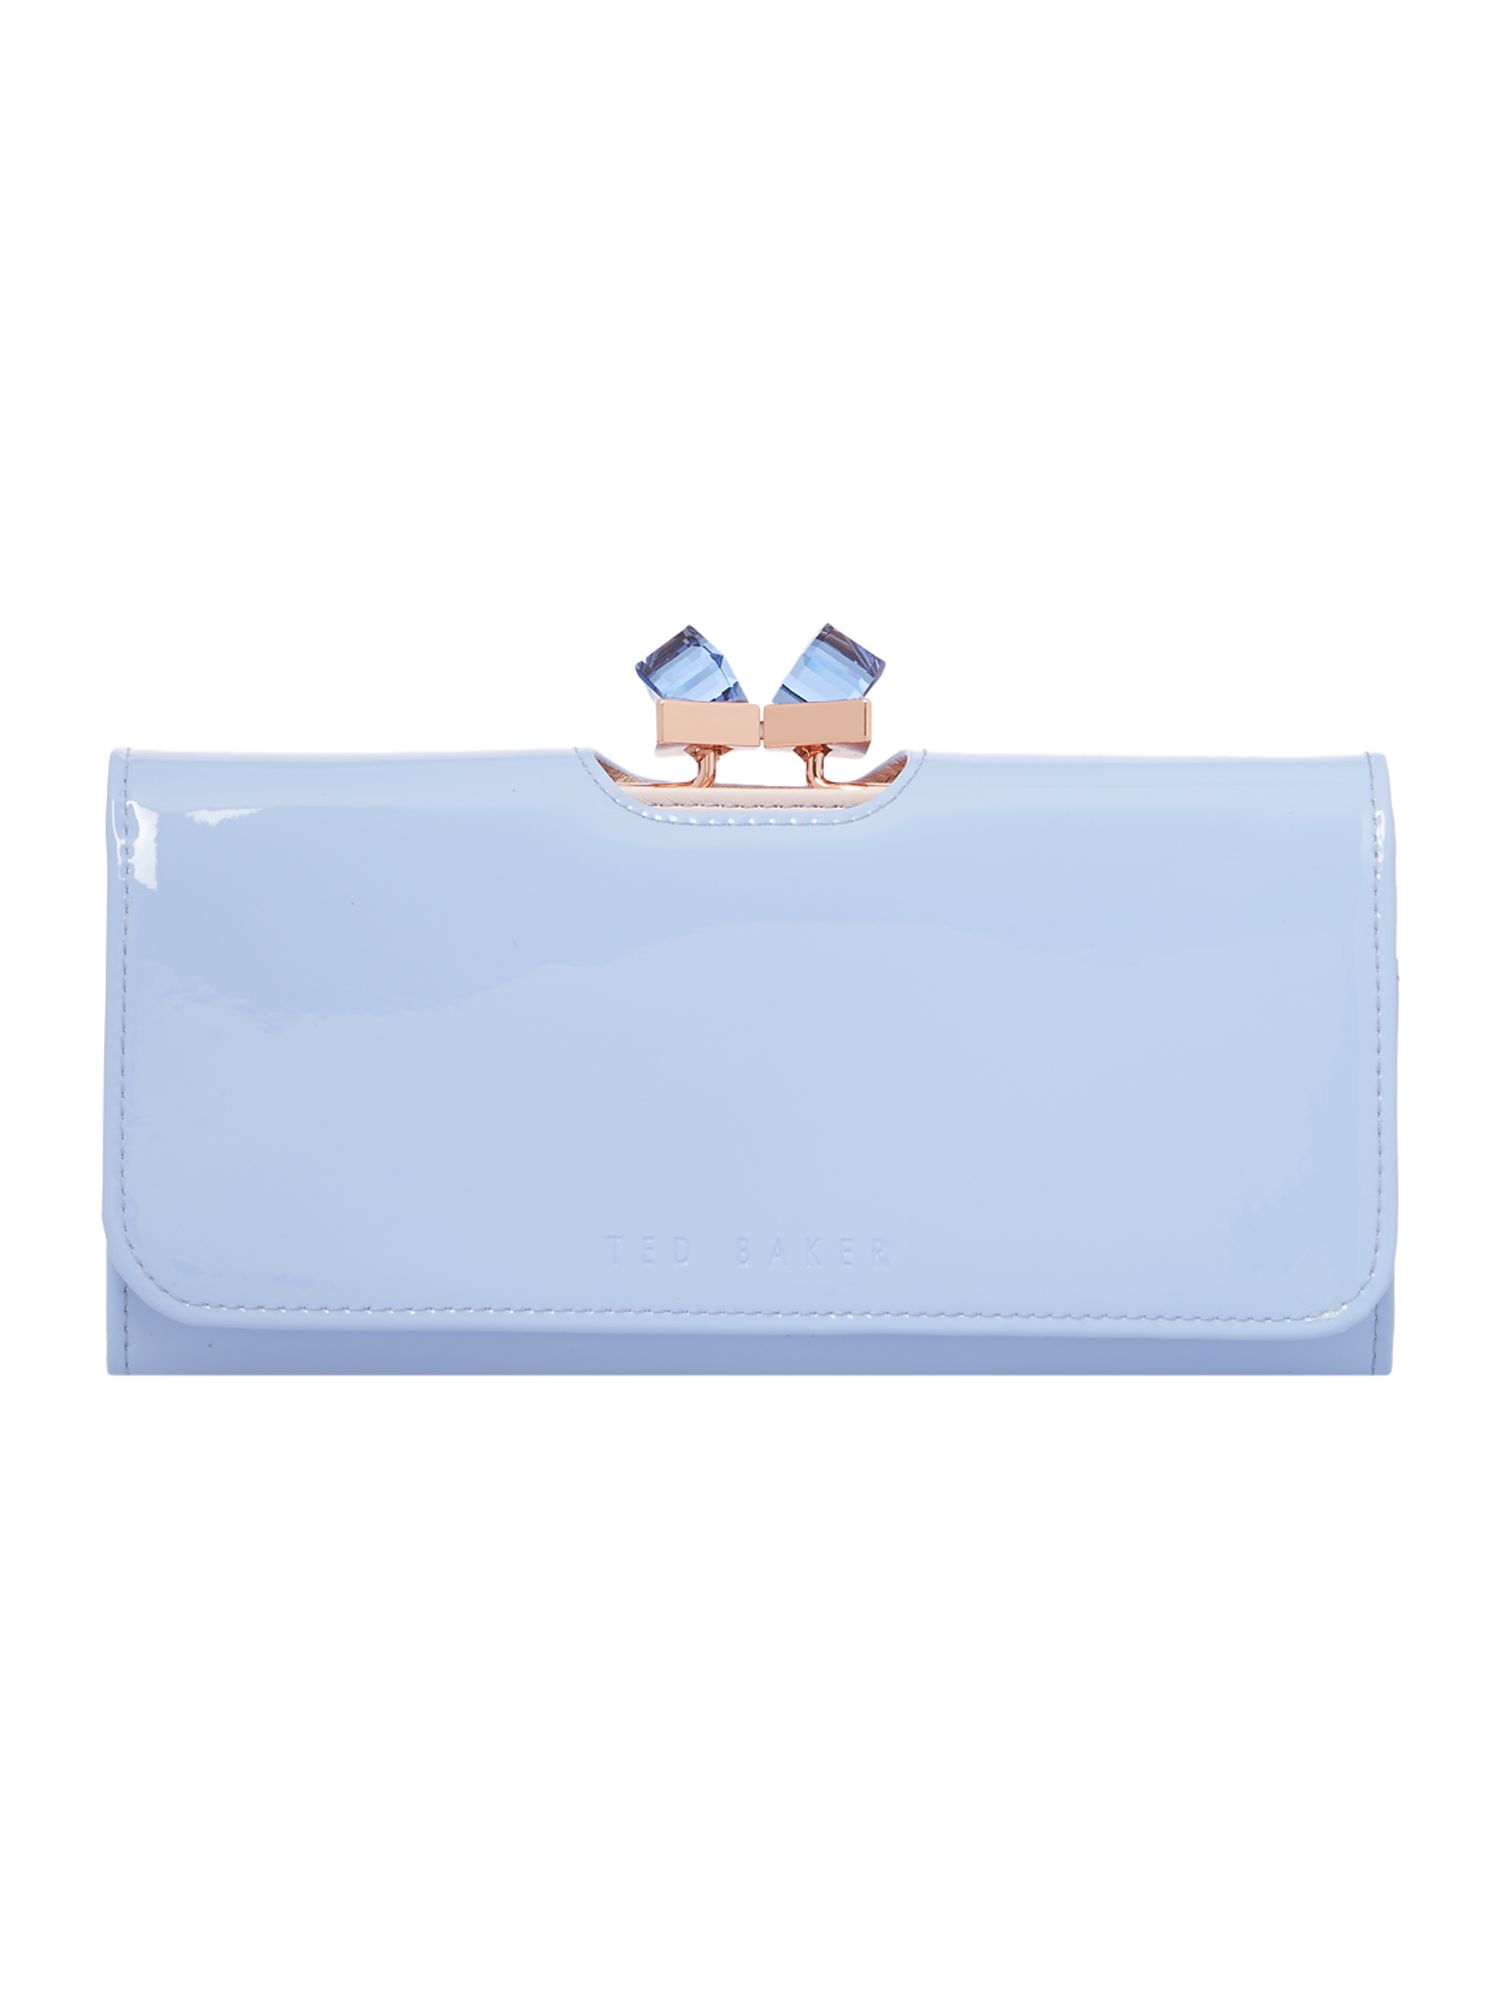 2d506d86eb895 Lyst - Ted Baker Pale Blue Large Patent Crystal Bow Flapover Purse ...